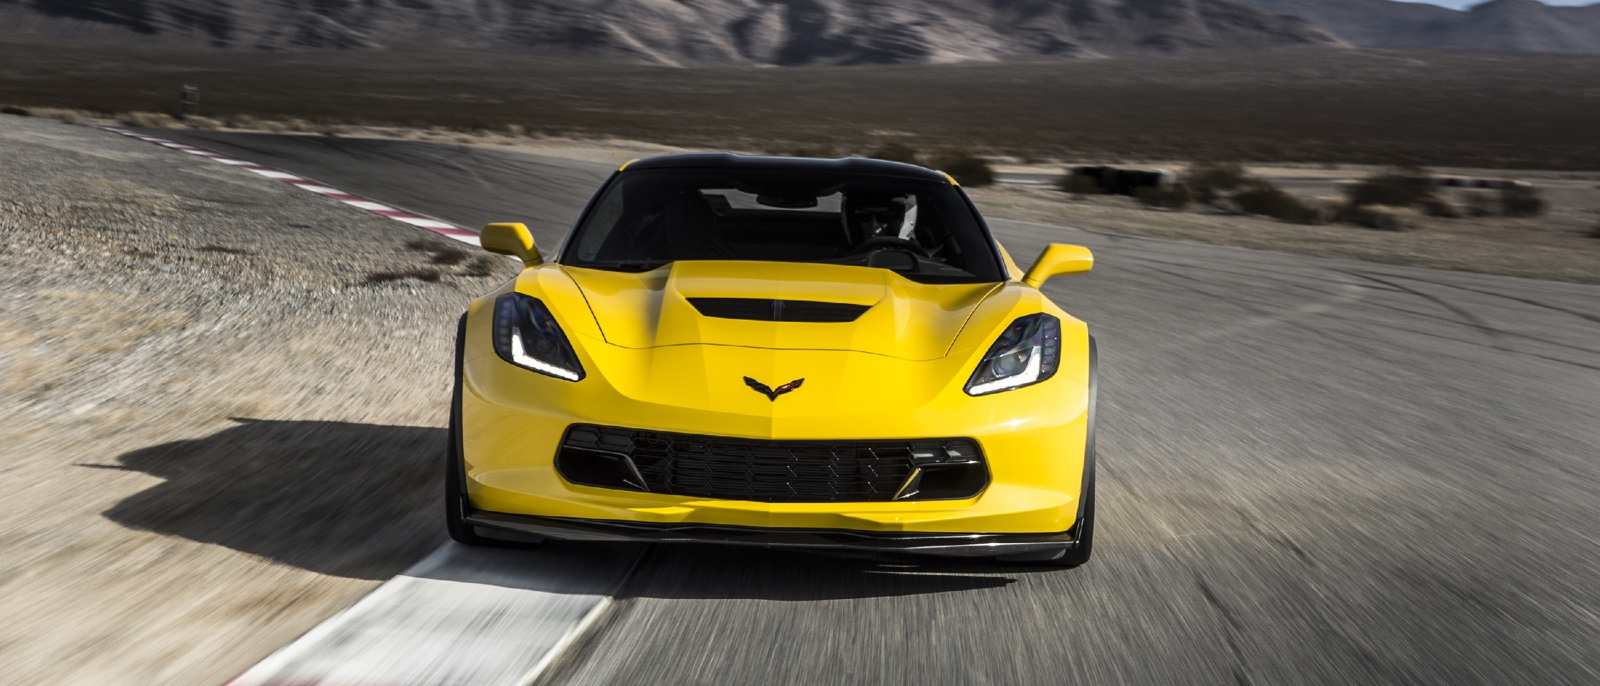 2015 Corvette Z06 yellow exterior